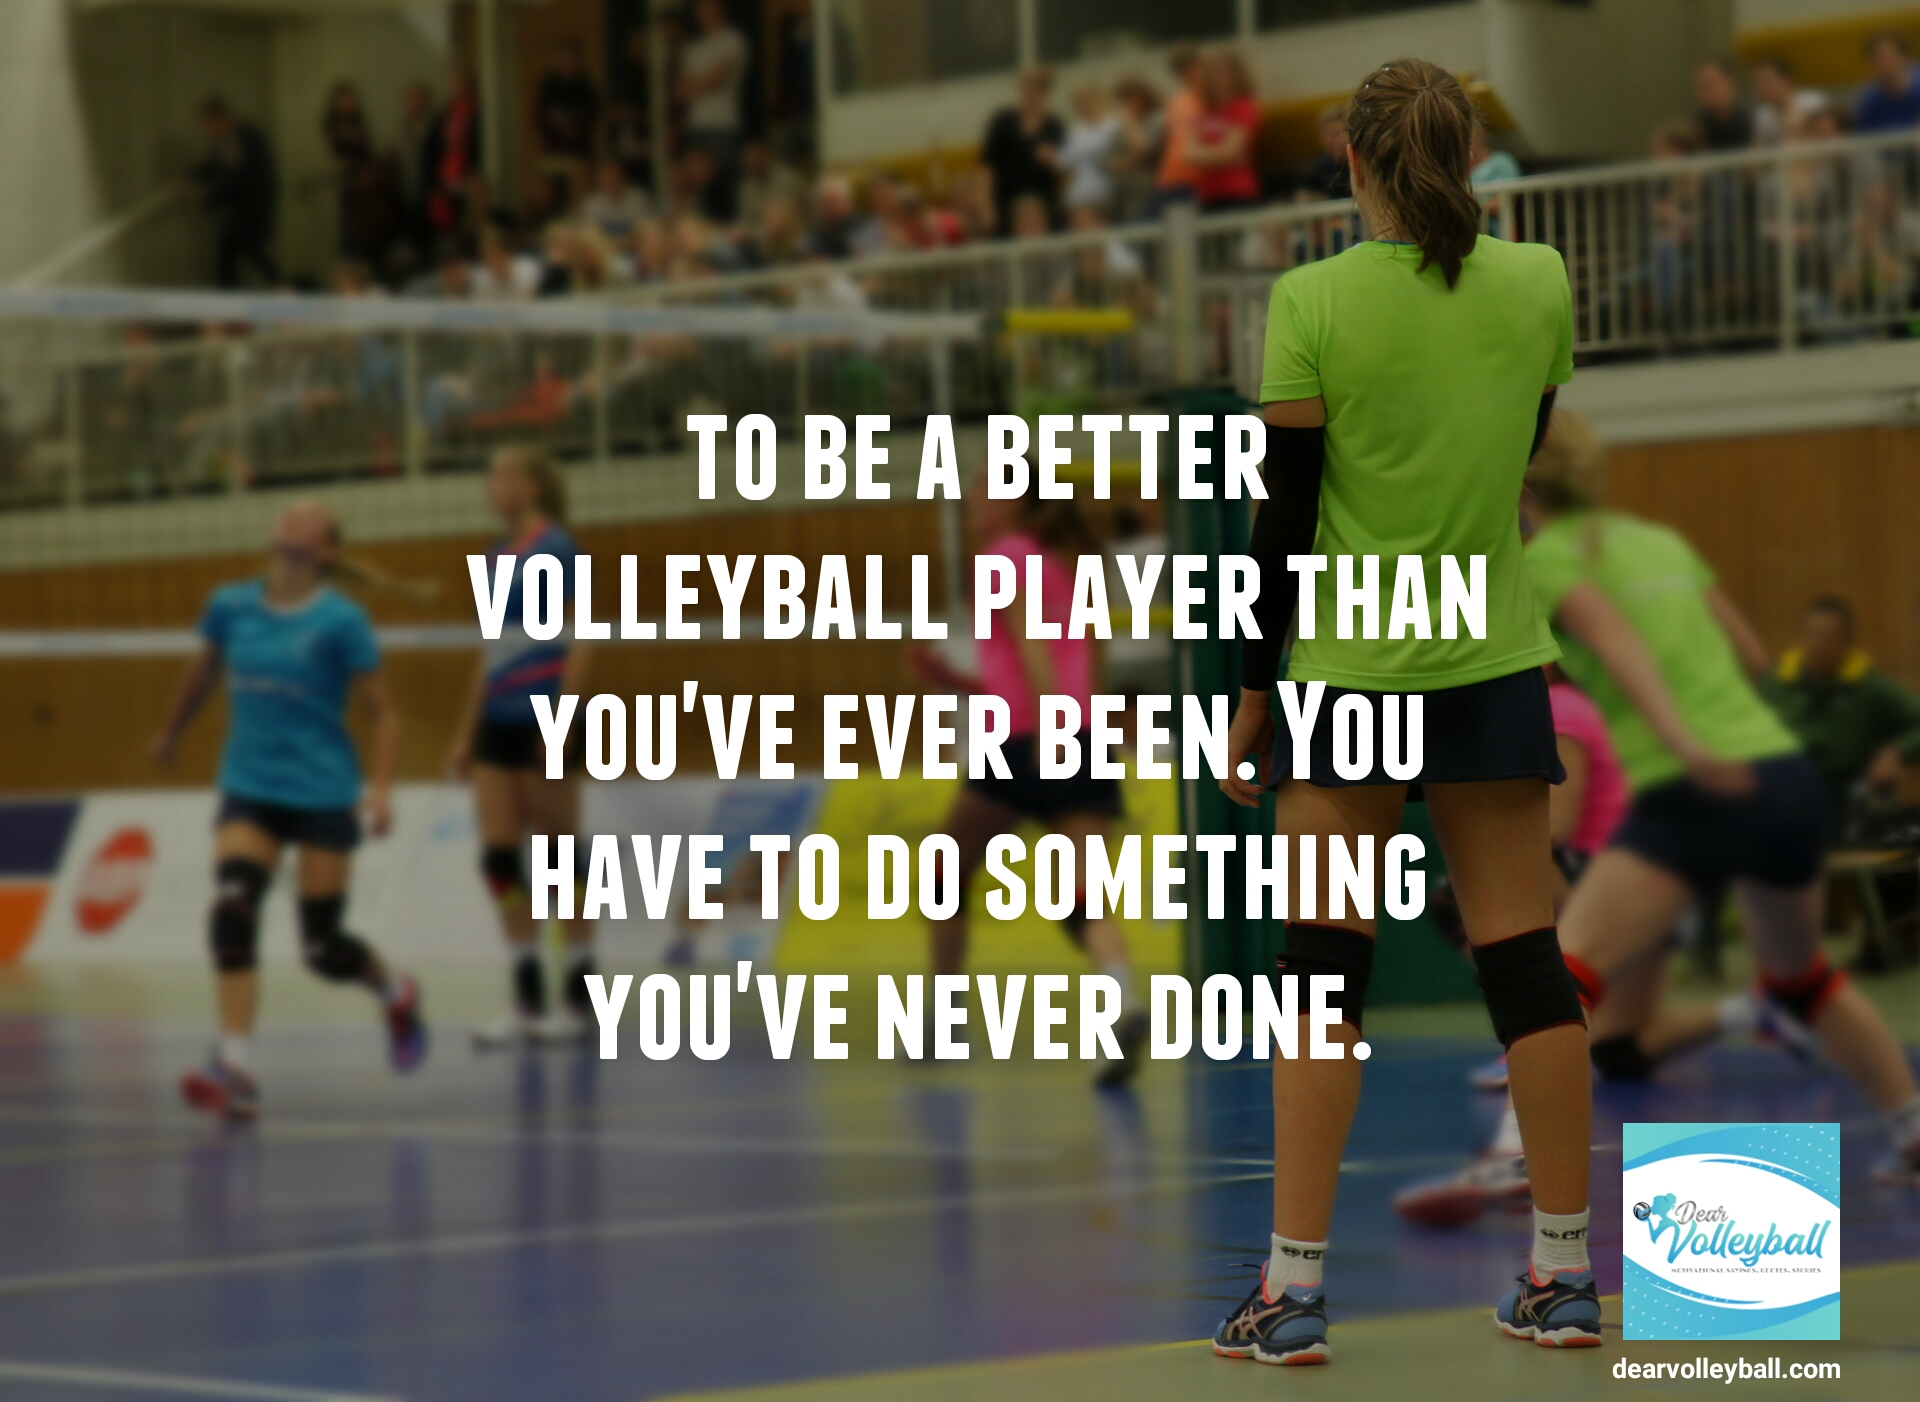 To be a better player than you've ever been and other motivating quotes on DearVolleyball.com